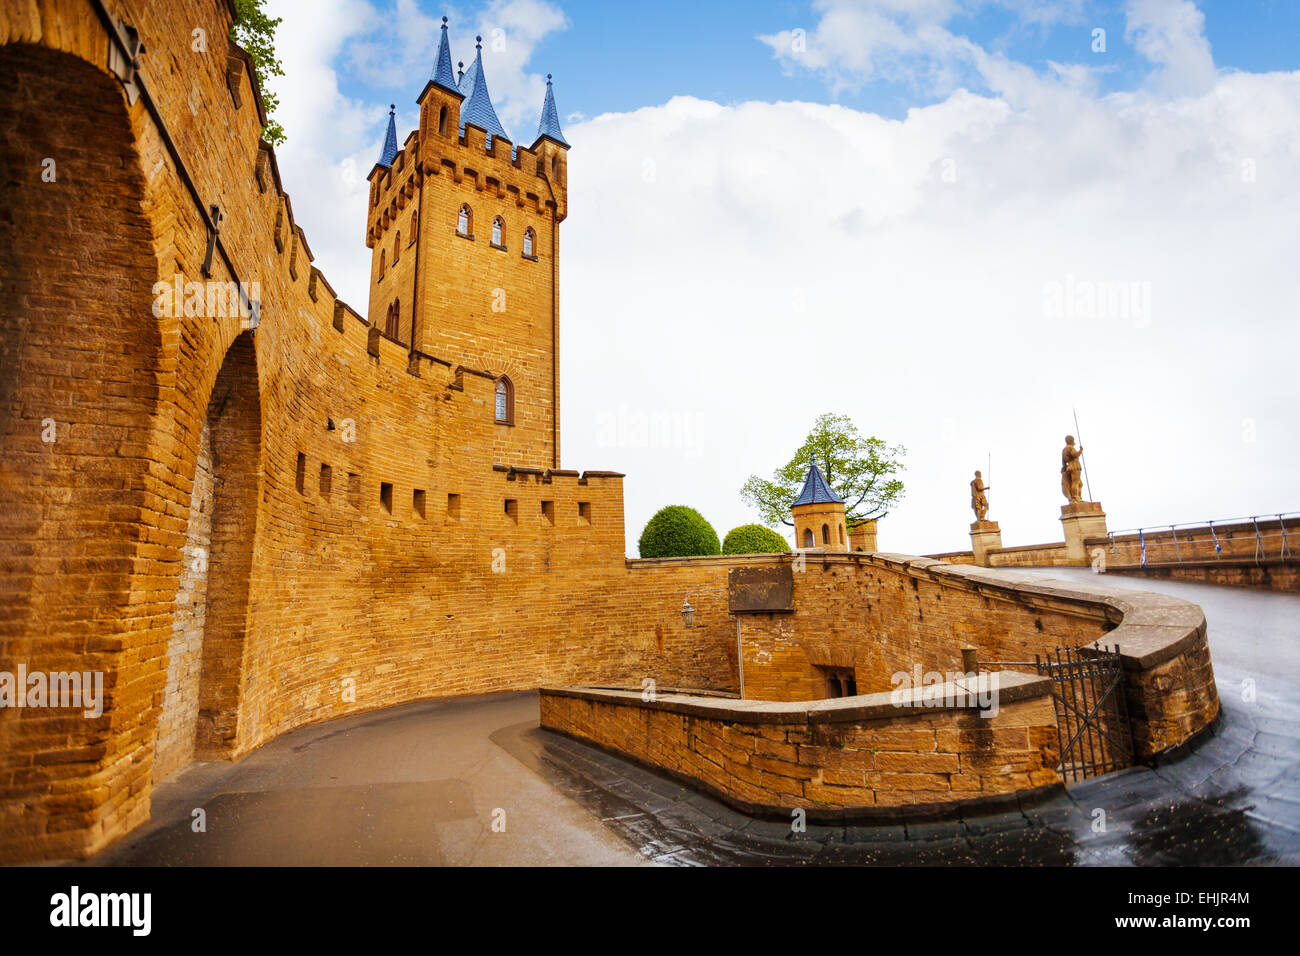 Inner yard of Hohenzollern castle after rain - Stock Image